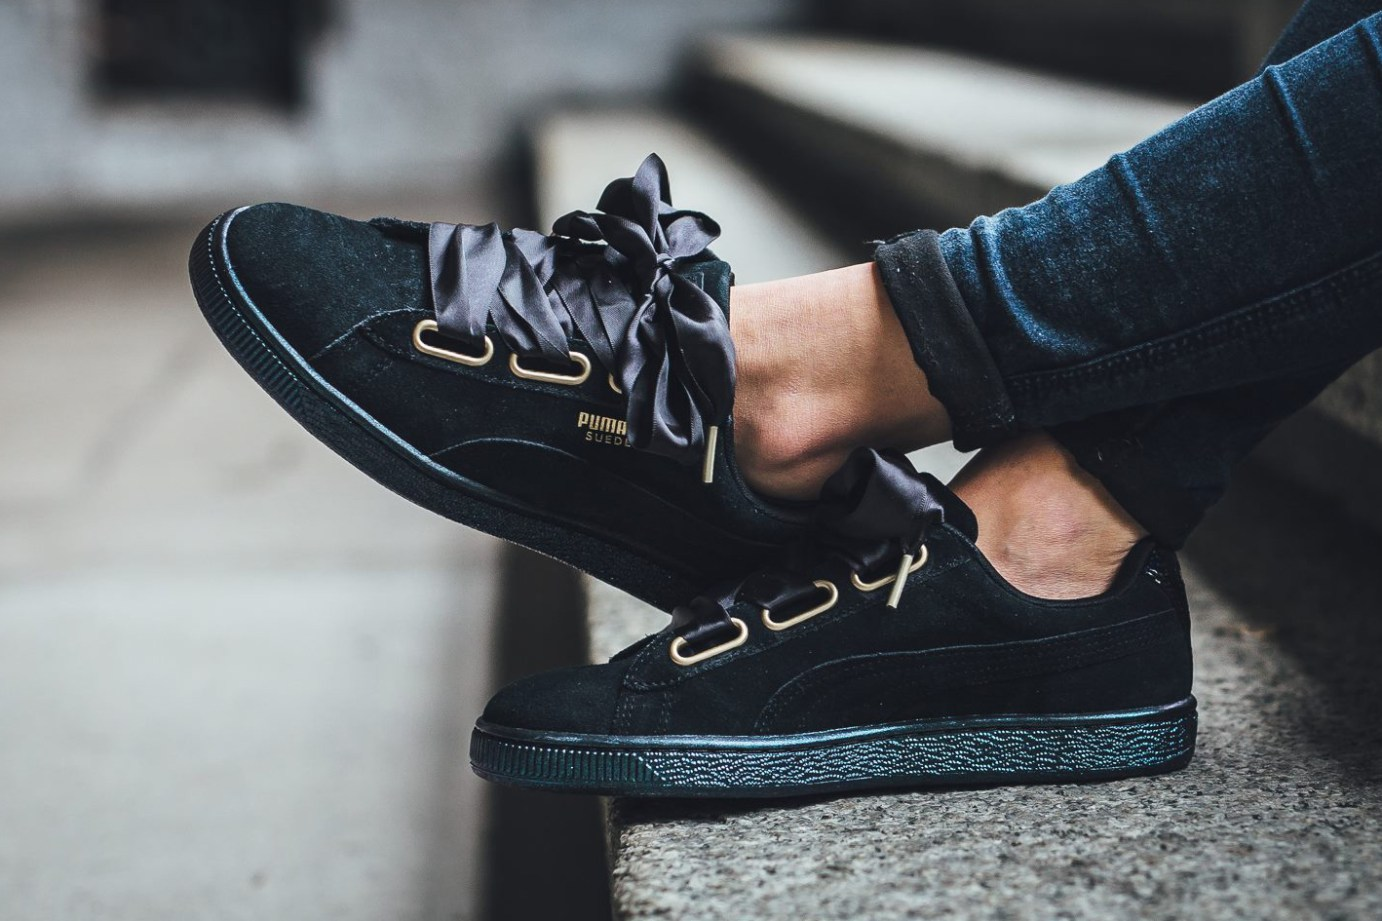 new concept a3483 5740b PUMA Unveils Suede Heart Satin in Black | Sidewalk Hustle